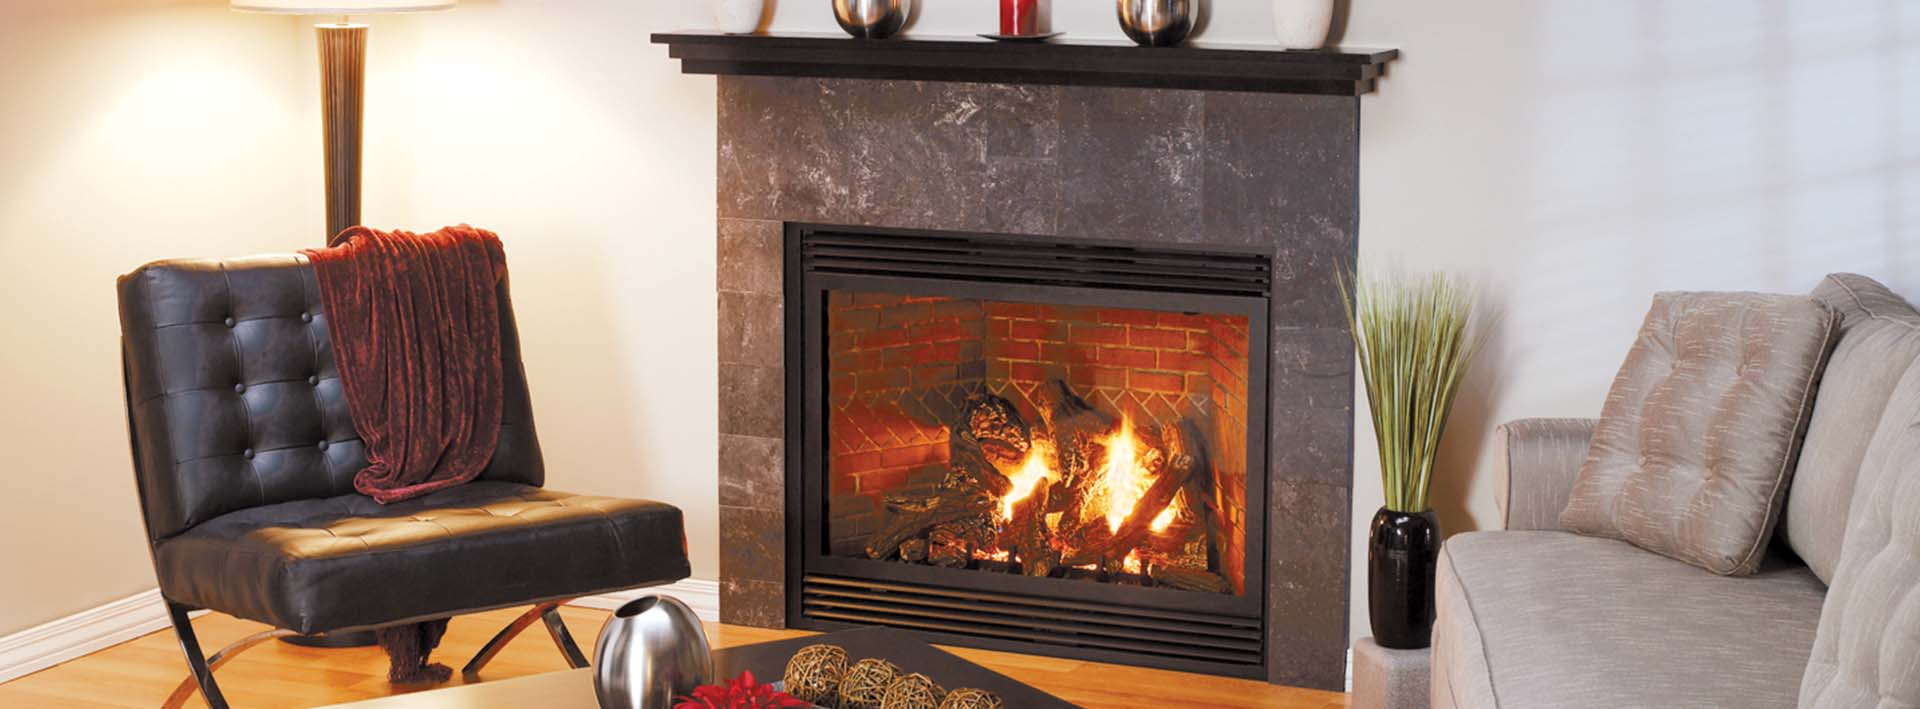 Convert Fireplace To Gas Burning Fireplace Installation Repair Service Gas Wood Burning Or